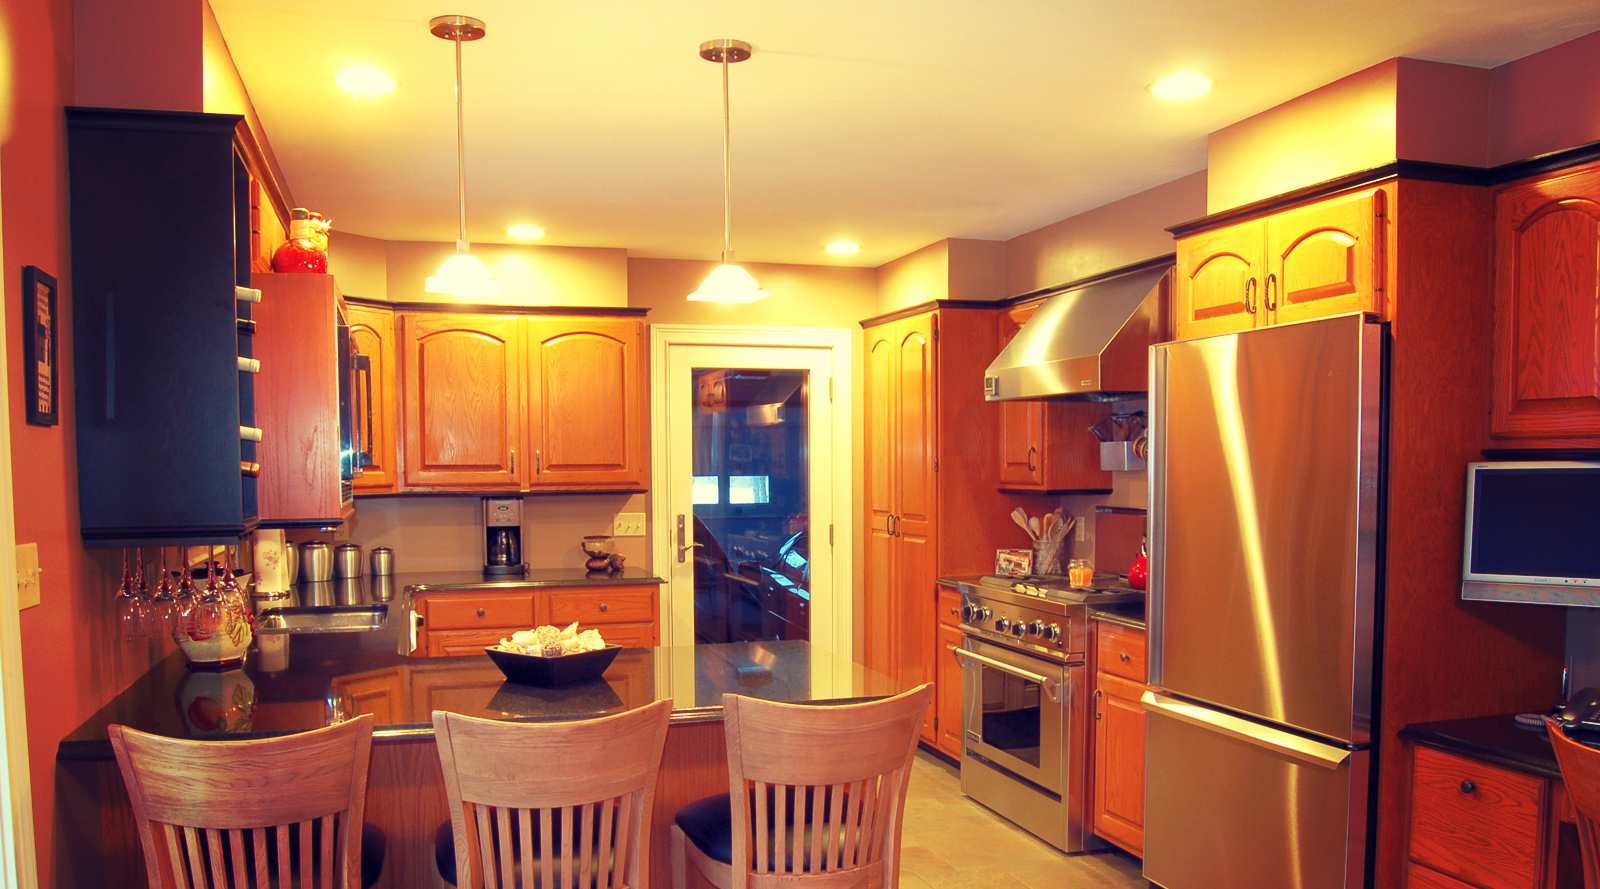 kitchen048 copy.jpg